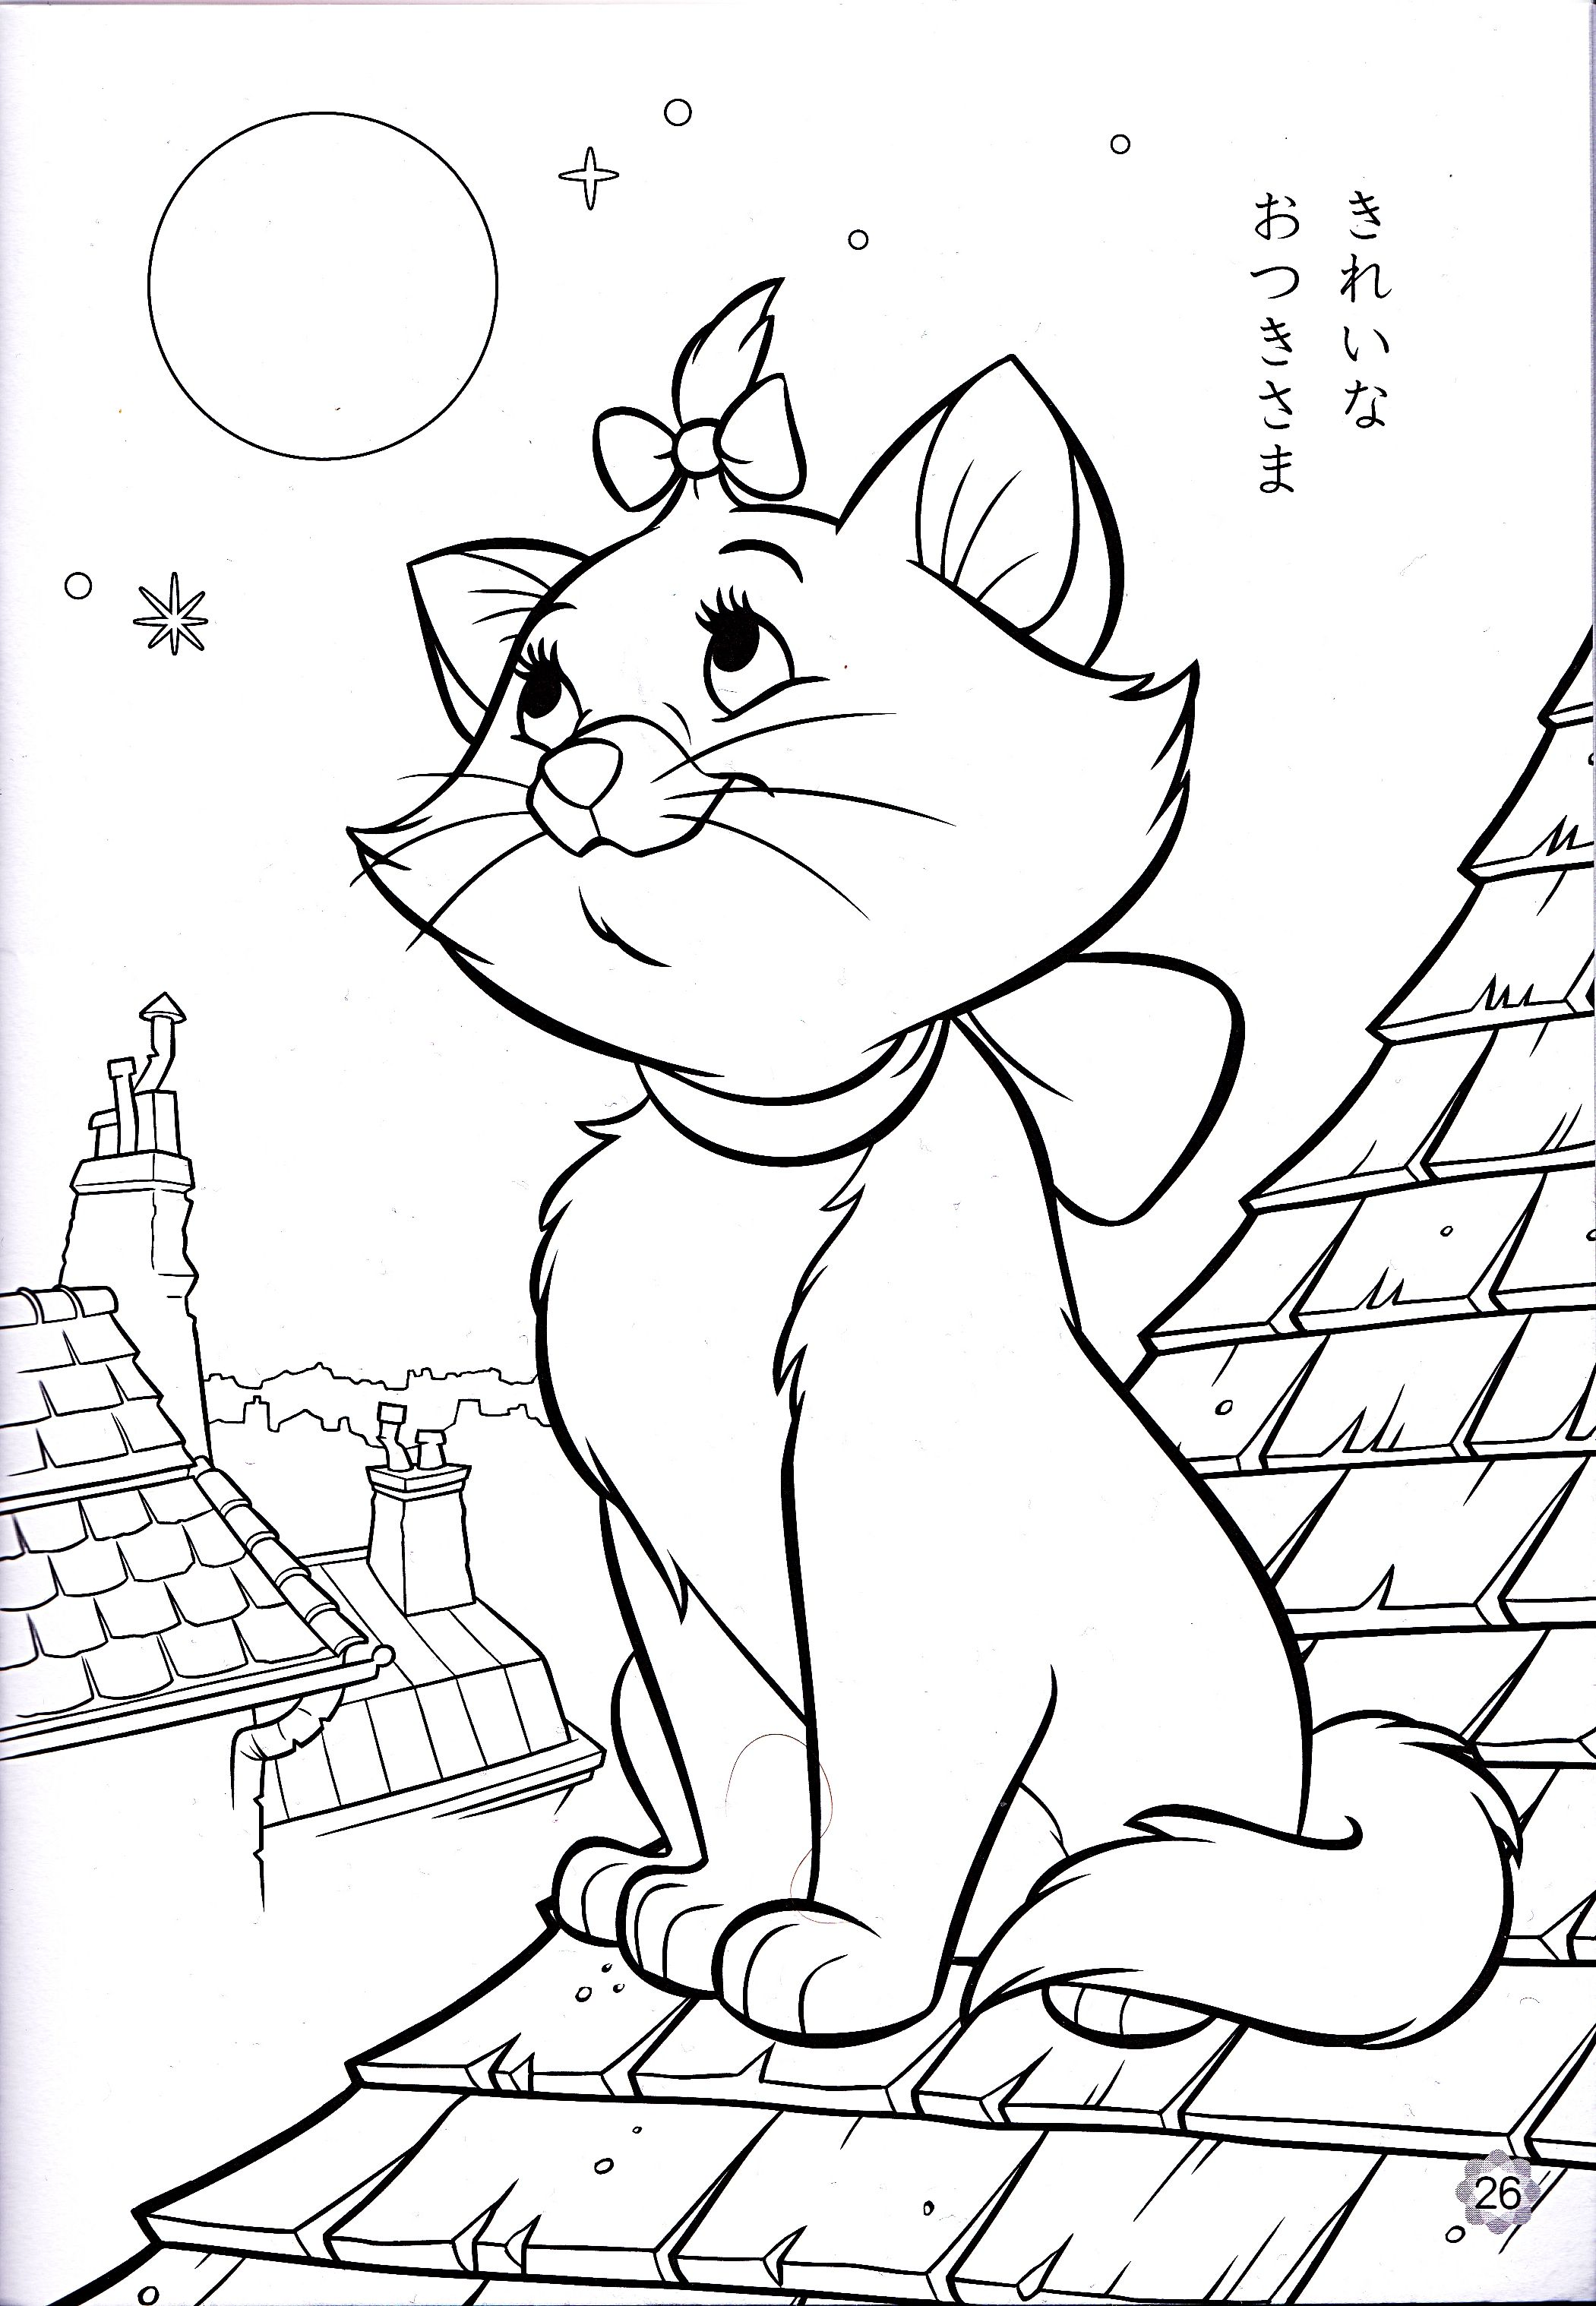 Coloring pages disney printable - Walt Disney Coloring Pages Marie Walt Disney Characters Photo